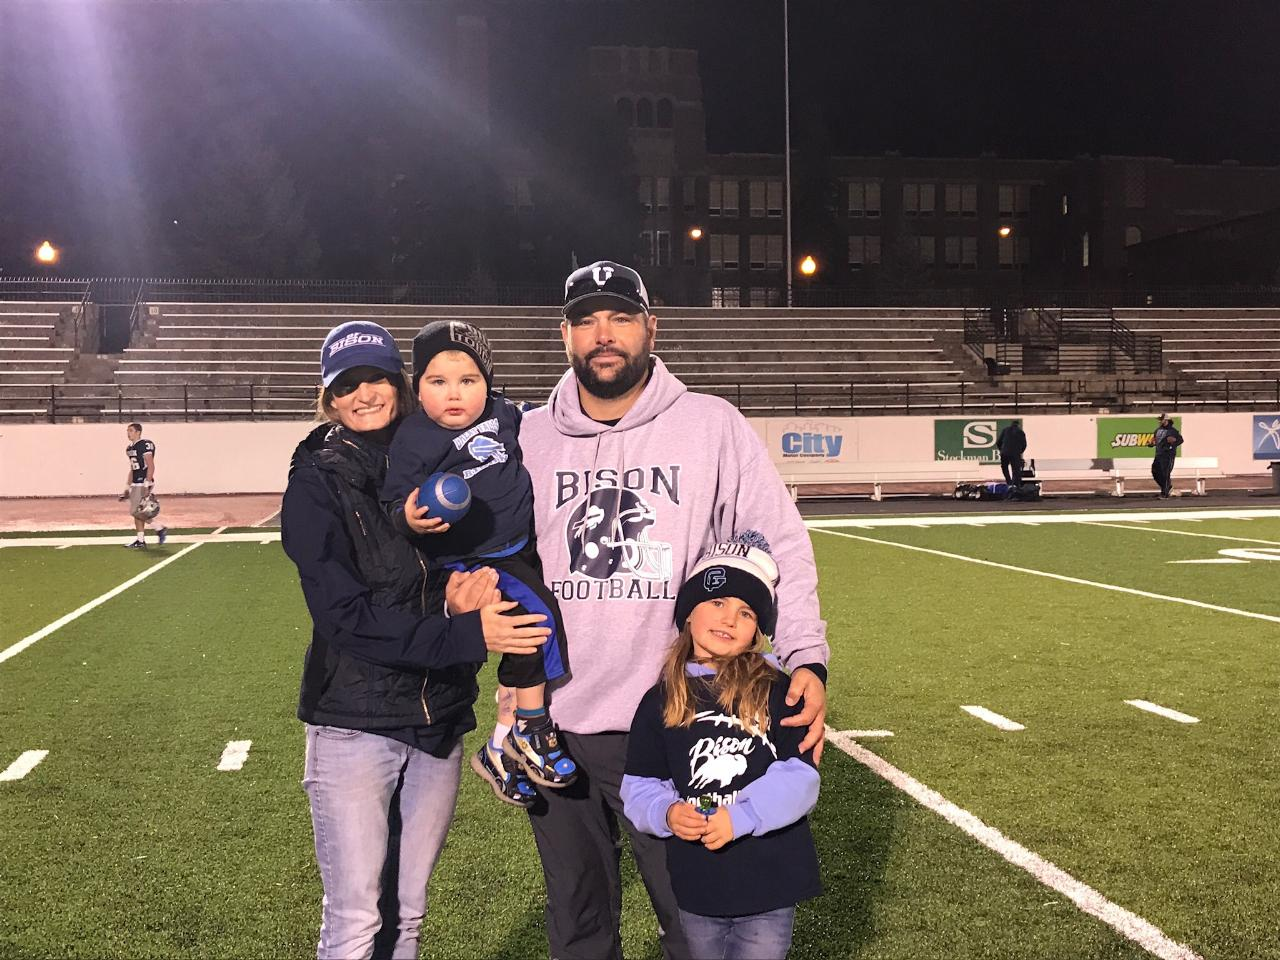 Caption: Wes and Callie Ross hold Troy with their daughter, Kennedy, at a football game.